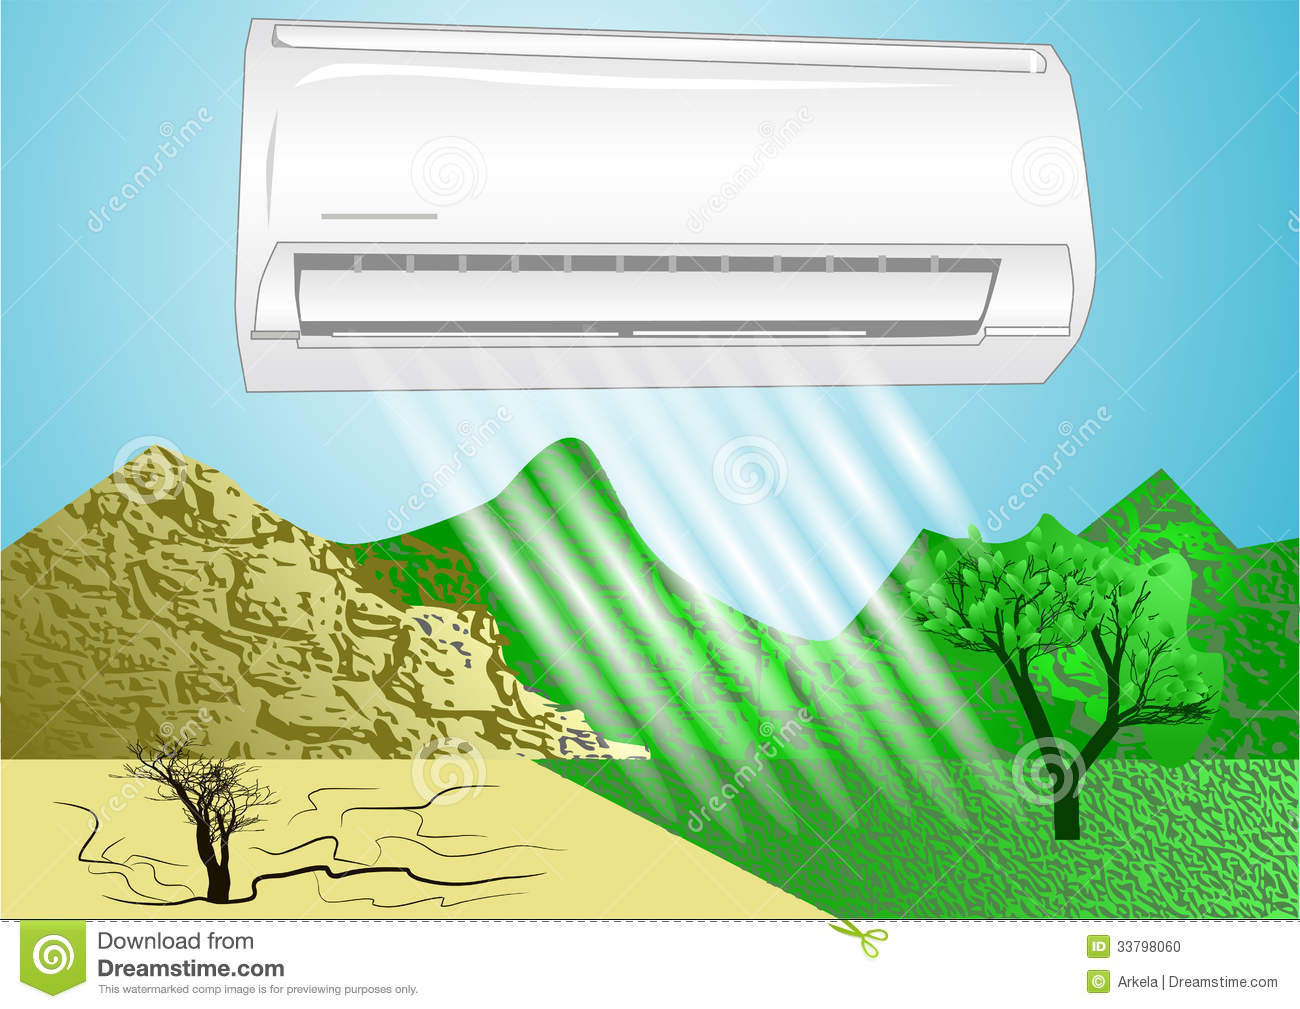 #248DA7 Air Conditioner Stock Photo Image: 33798060 Recommended 10377 Air Conditioner Lifespan pics with 1300x1009 px on helpvideos.info - Air Conditioners, Air Coolers and more